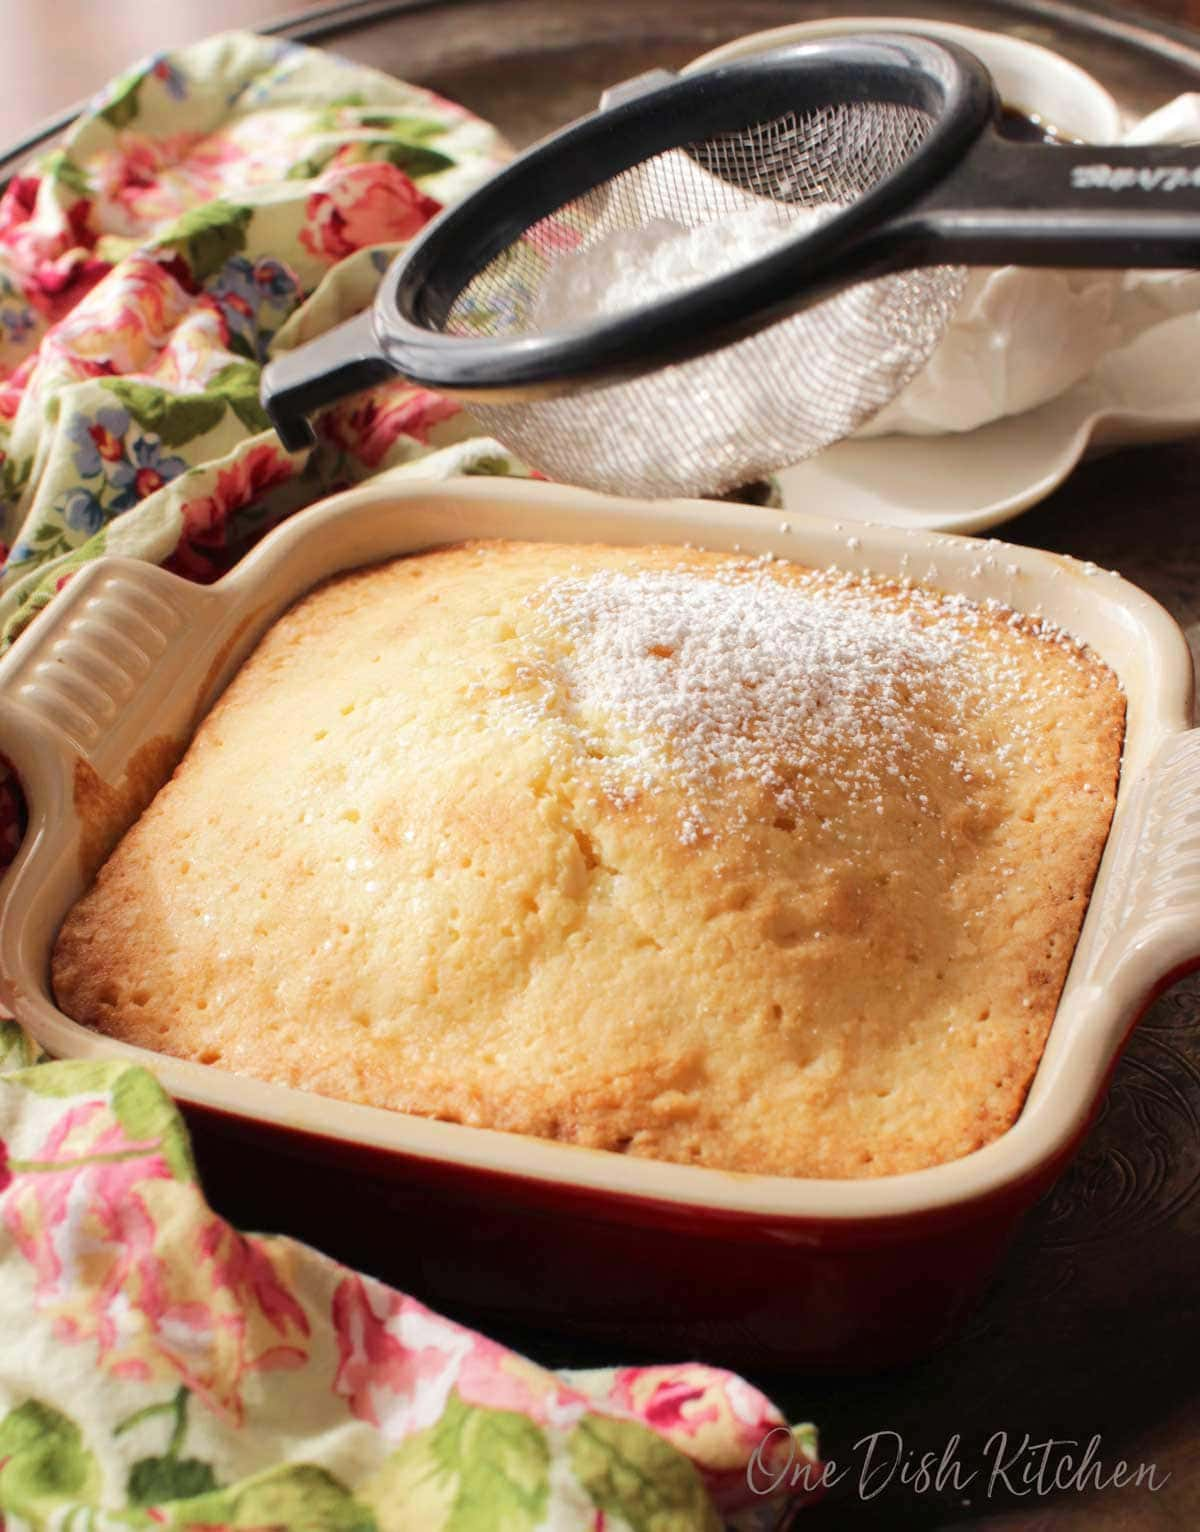 One square pound cake in a small baking dish being dusted with powdered sugar next to a cup of coffee.